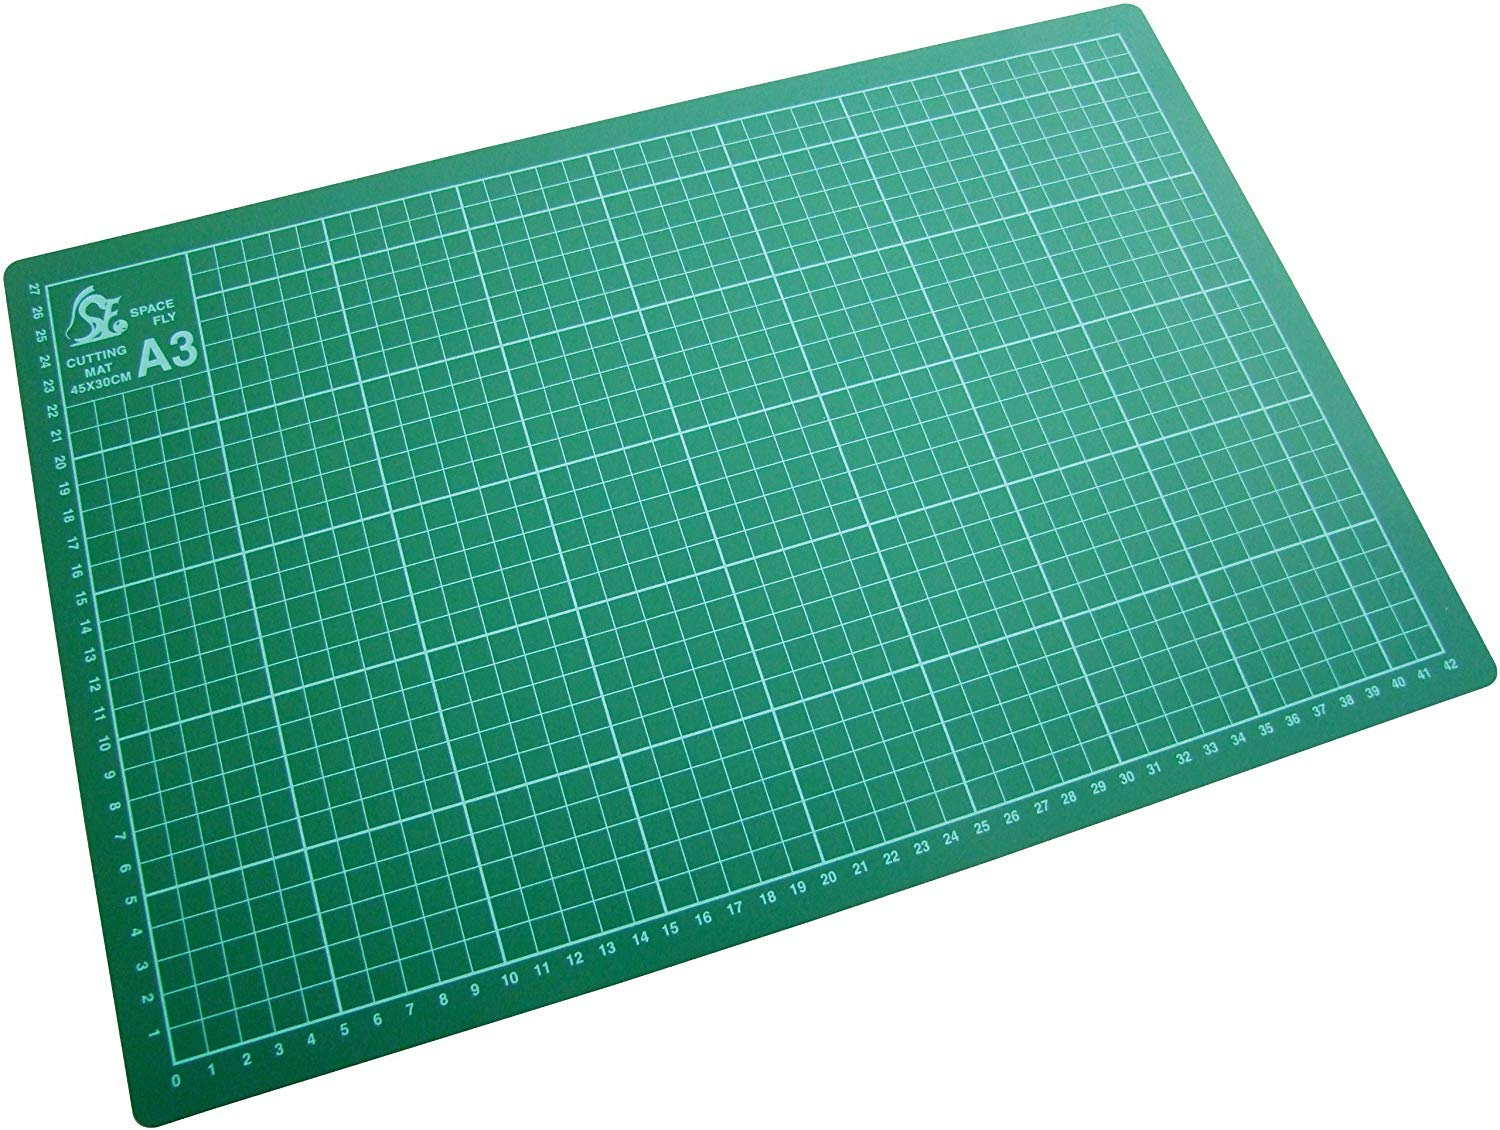 etc LETTUCE EAT /® A3 Cutting Mat Premium Quality Flexible Non Slip Hobby Arts and Crafts Surface with Accurate Guide Grid Lines Design for Cutting Paper Card Protects from Cuts and Damage